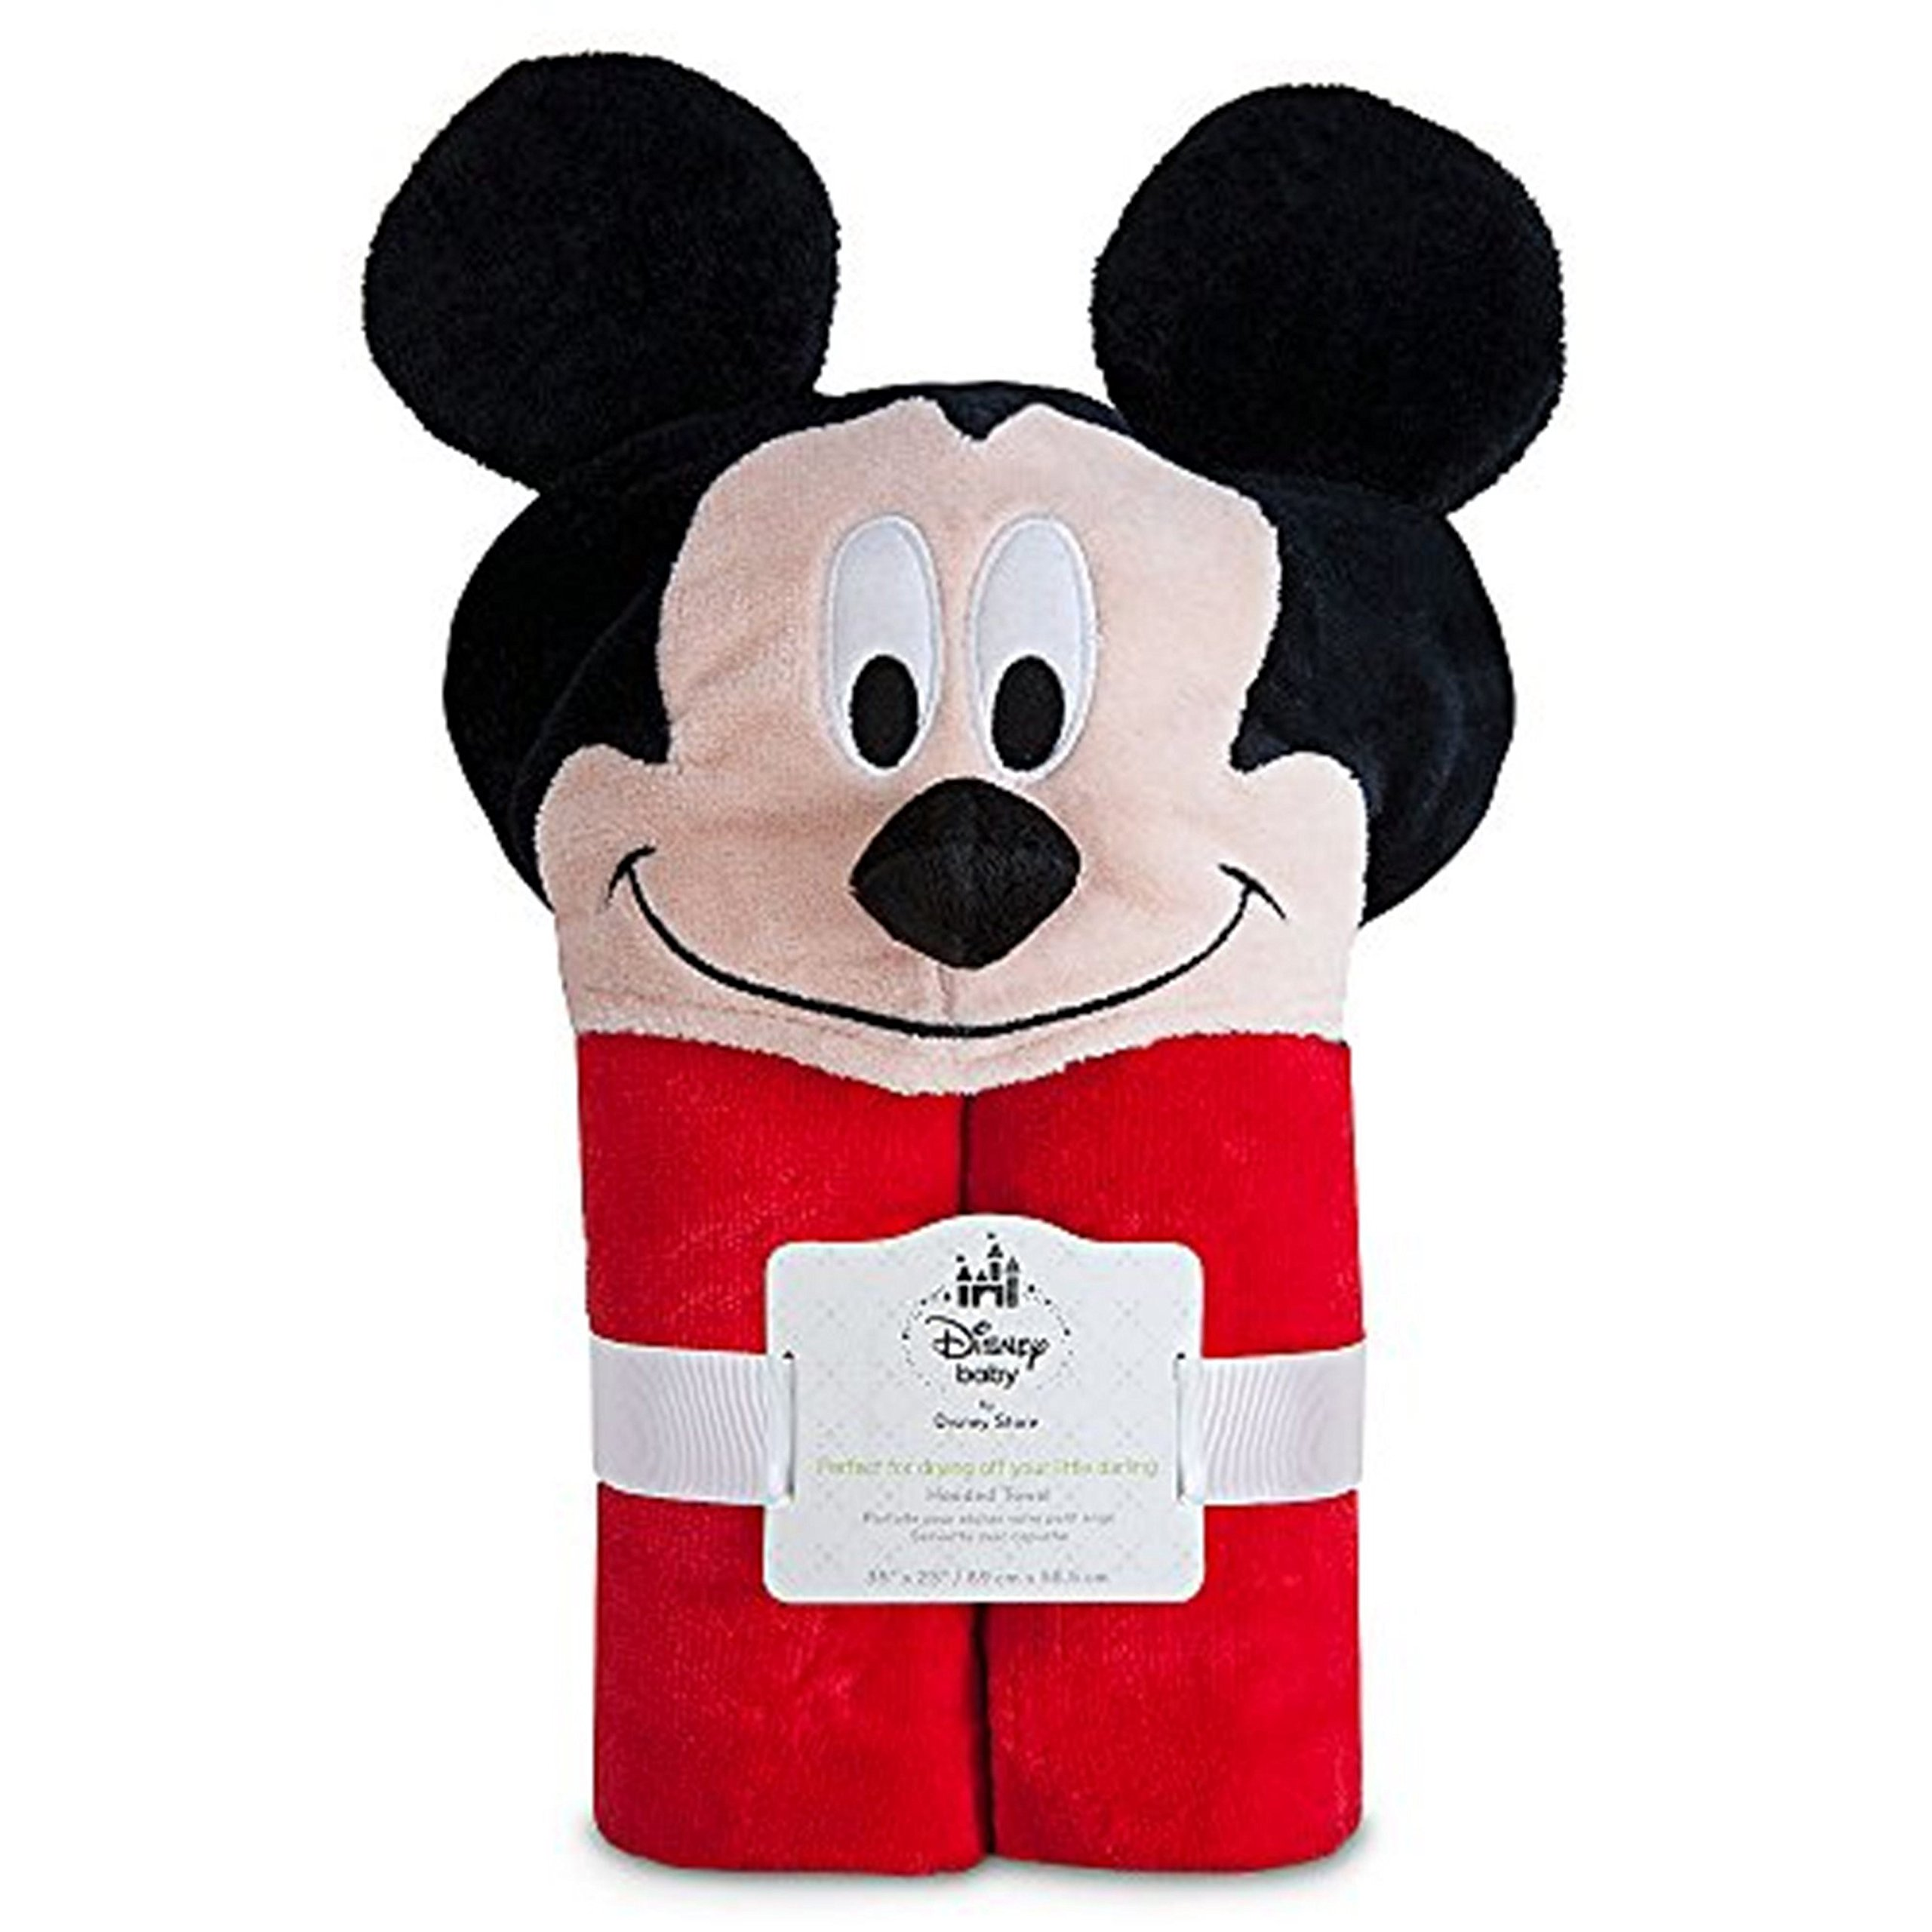 Disney Mickey Mouse Hooded Towel for Baby Toddlers Boys Clubhouse by We-Love-Babies